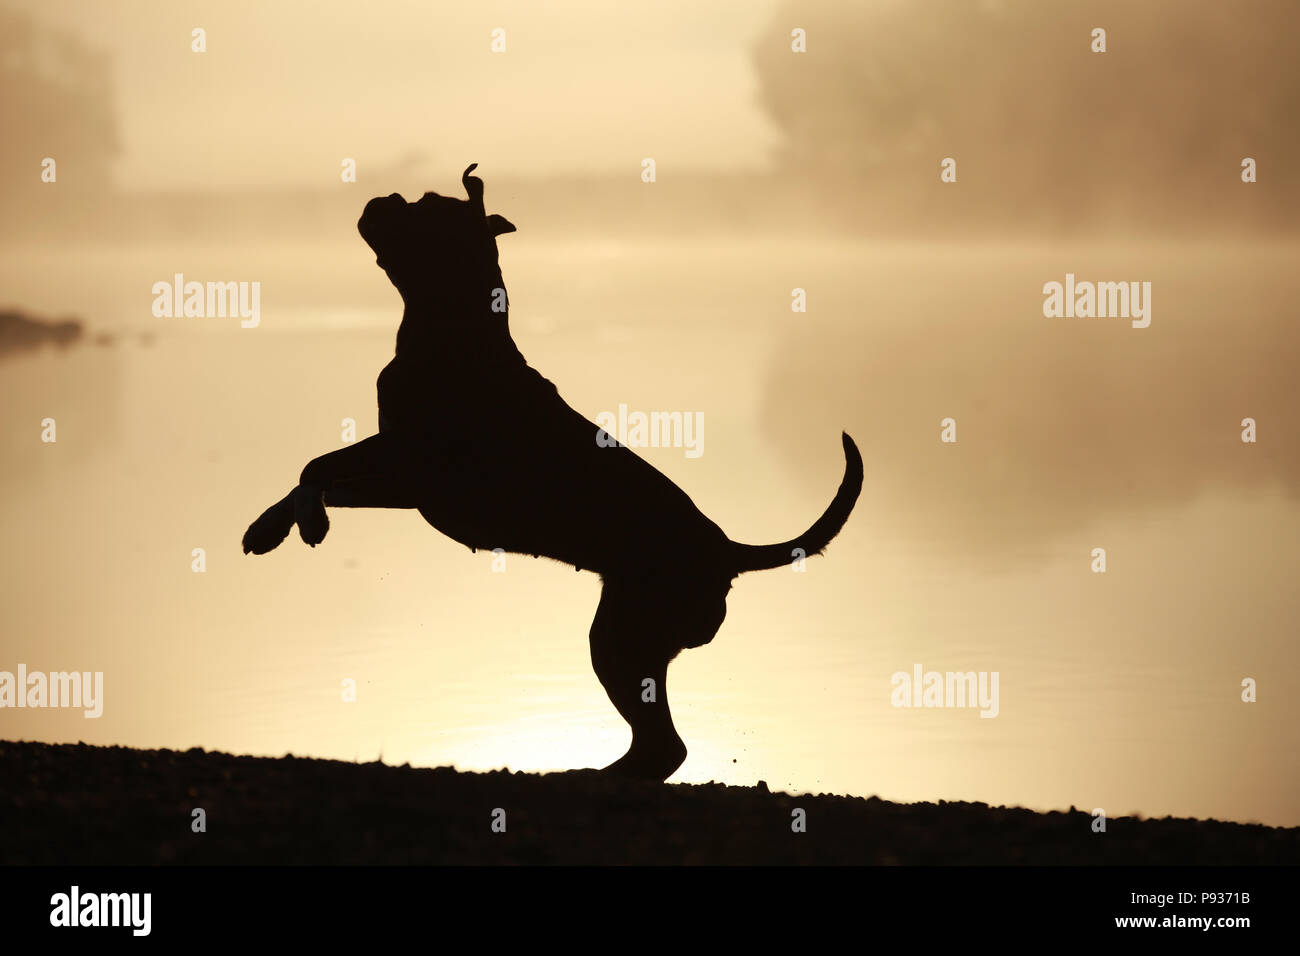 Silhouette of a German boxer dog - Stock Image